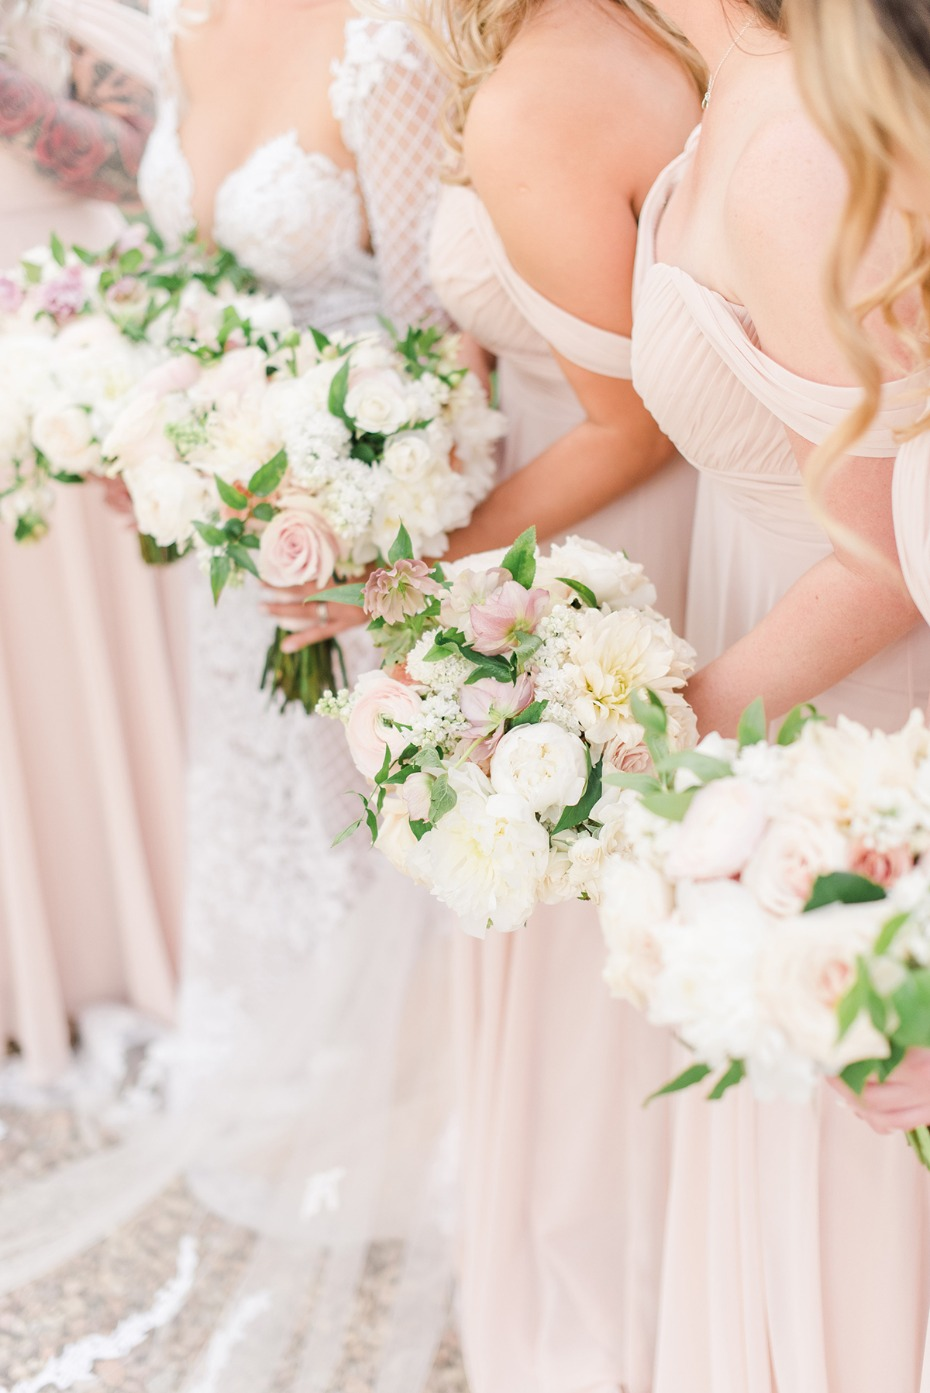 How To Have A Blush And Ivory Wedding At Calamigos Ranch